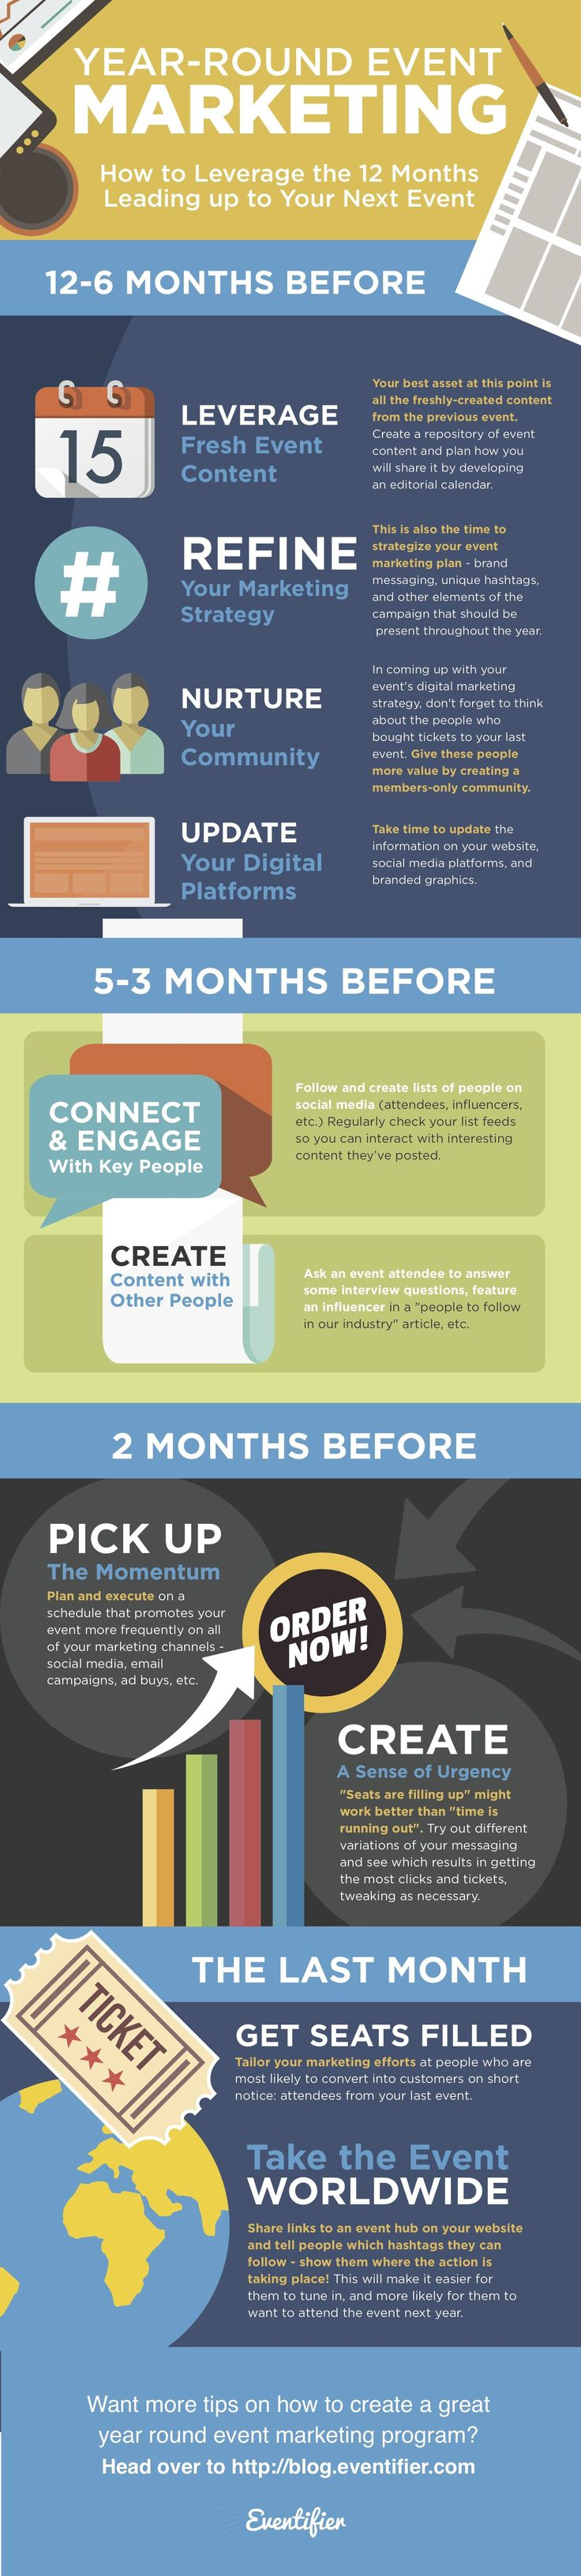 Year-Round Event Marketing #infographic #EventMarketing #Marketing